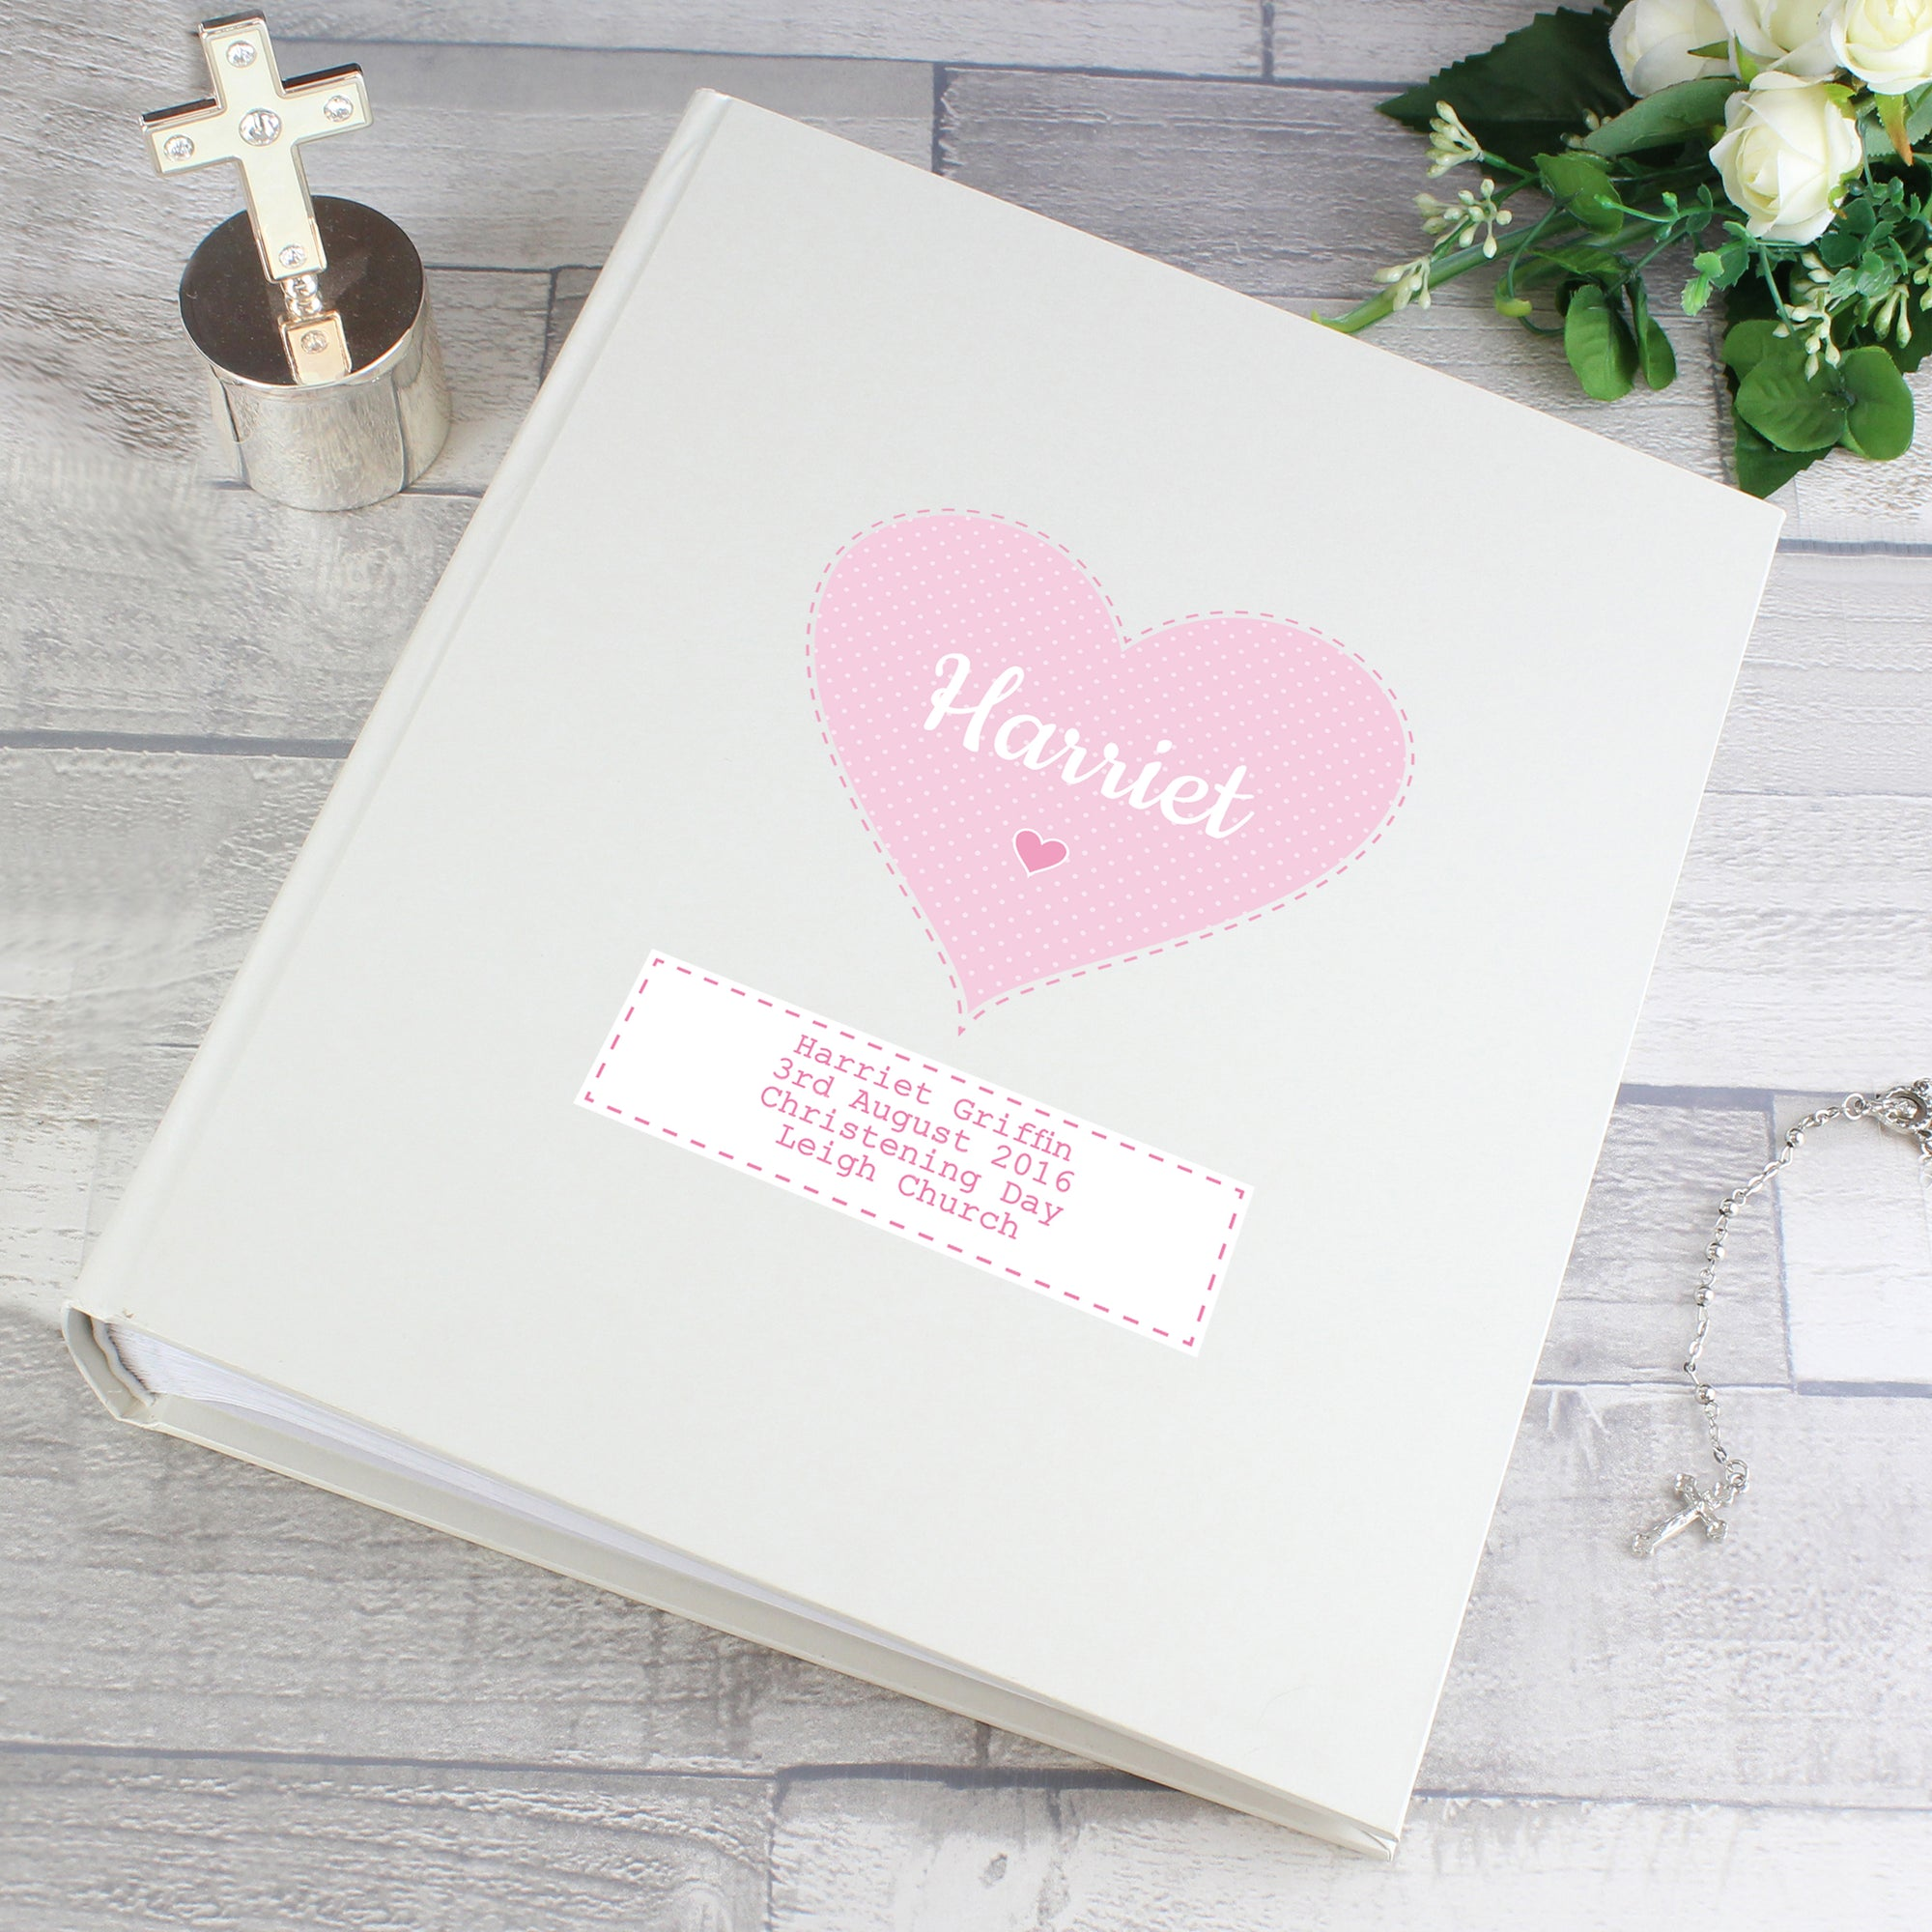 Personalised white satin sheen photo album which has a pink heart in the centre of the front cover. The cover can be personalised with a name of your choice which will be printed in a modern white font inside the pink heart. Beneath the star is a white box and you can add your own special information over up to 4 lines which will be printed in pink text.